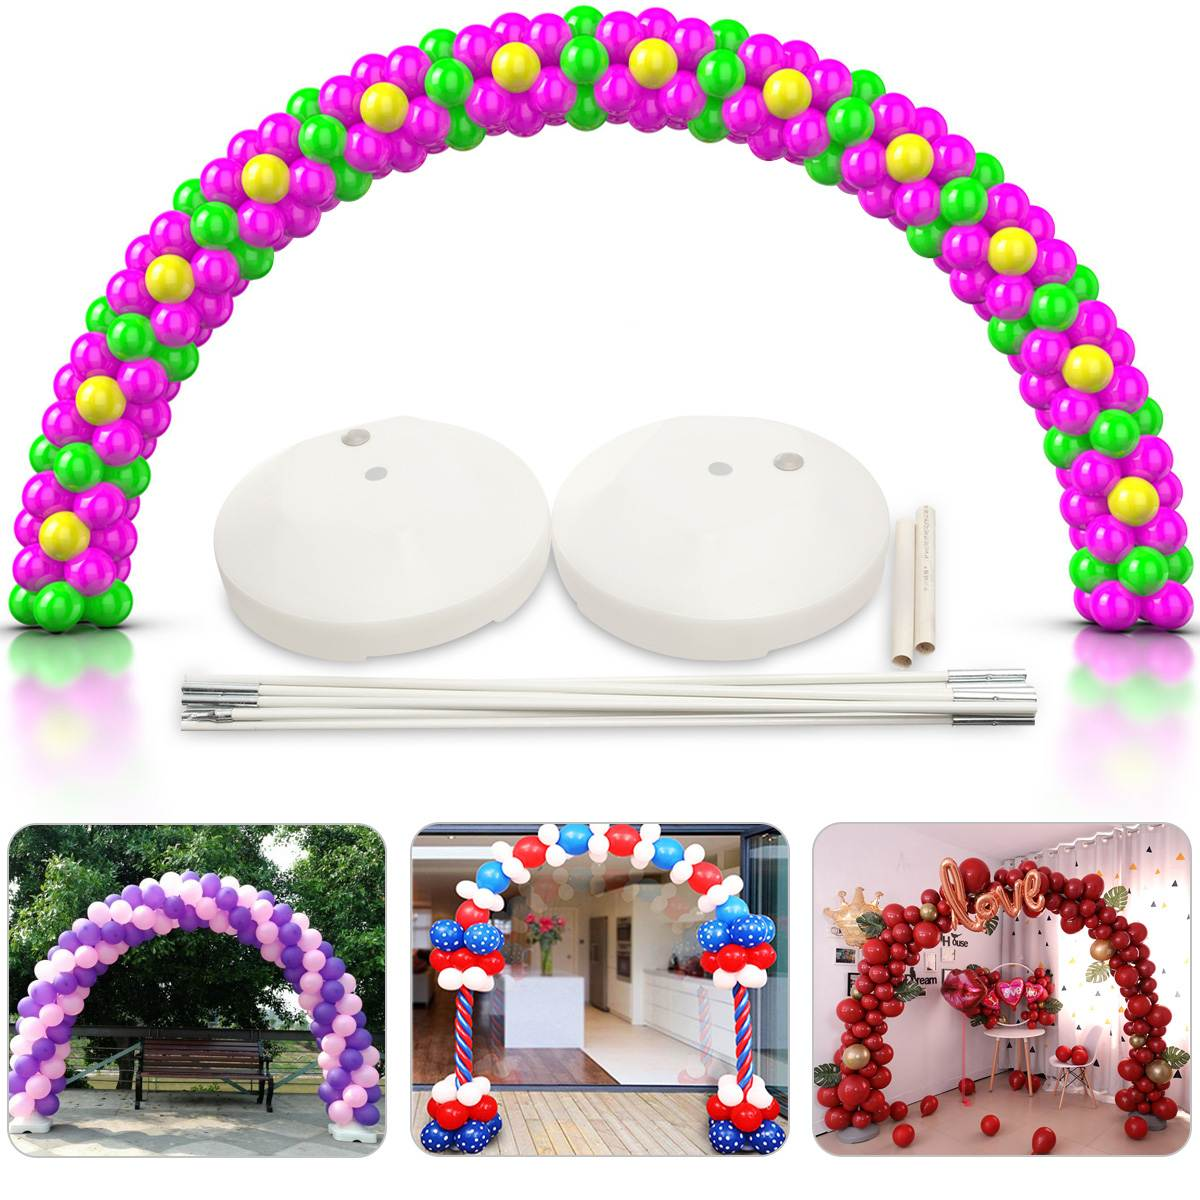 1Set Large Balloon Arch Column Stand Frame Base Kit for Wedding Birthday Party DIY Decoration1Set Large Balloon Arch Column Stand Frame Base Kit for Wedding Birthday Party DIY Decoration